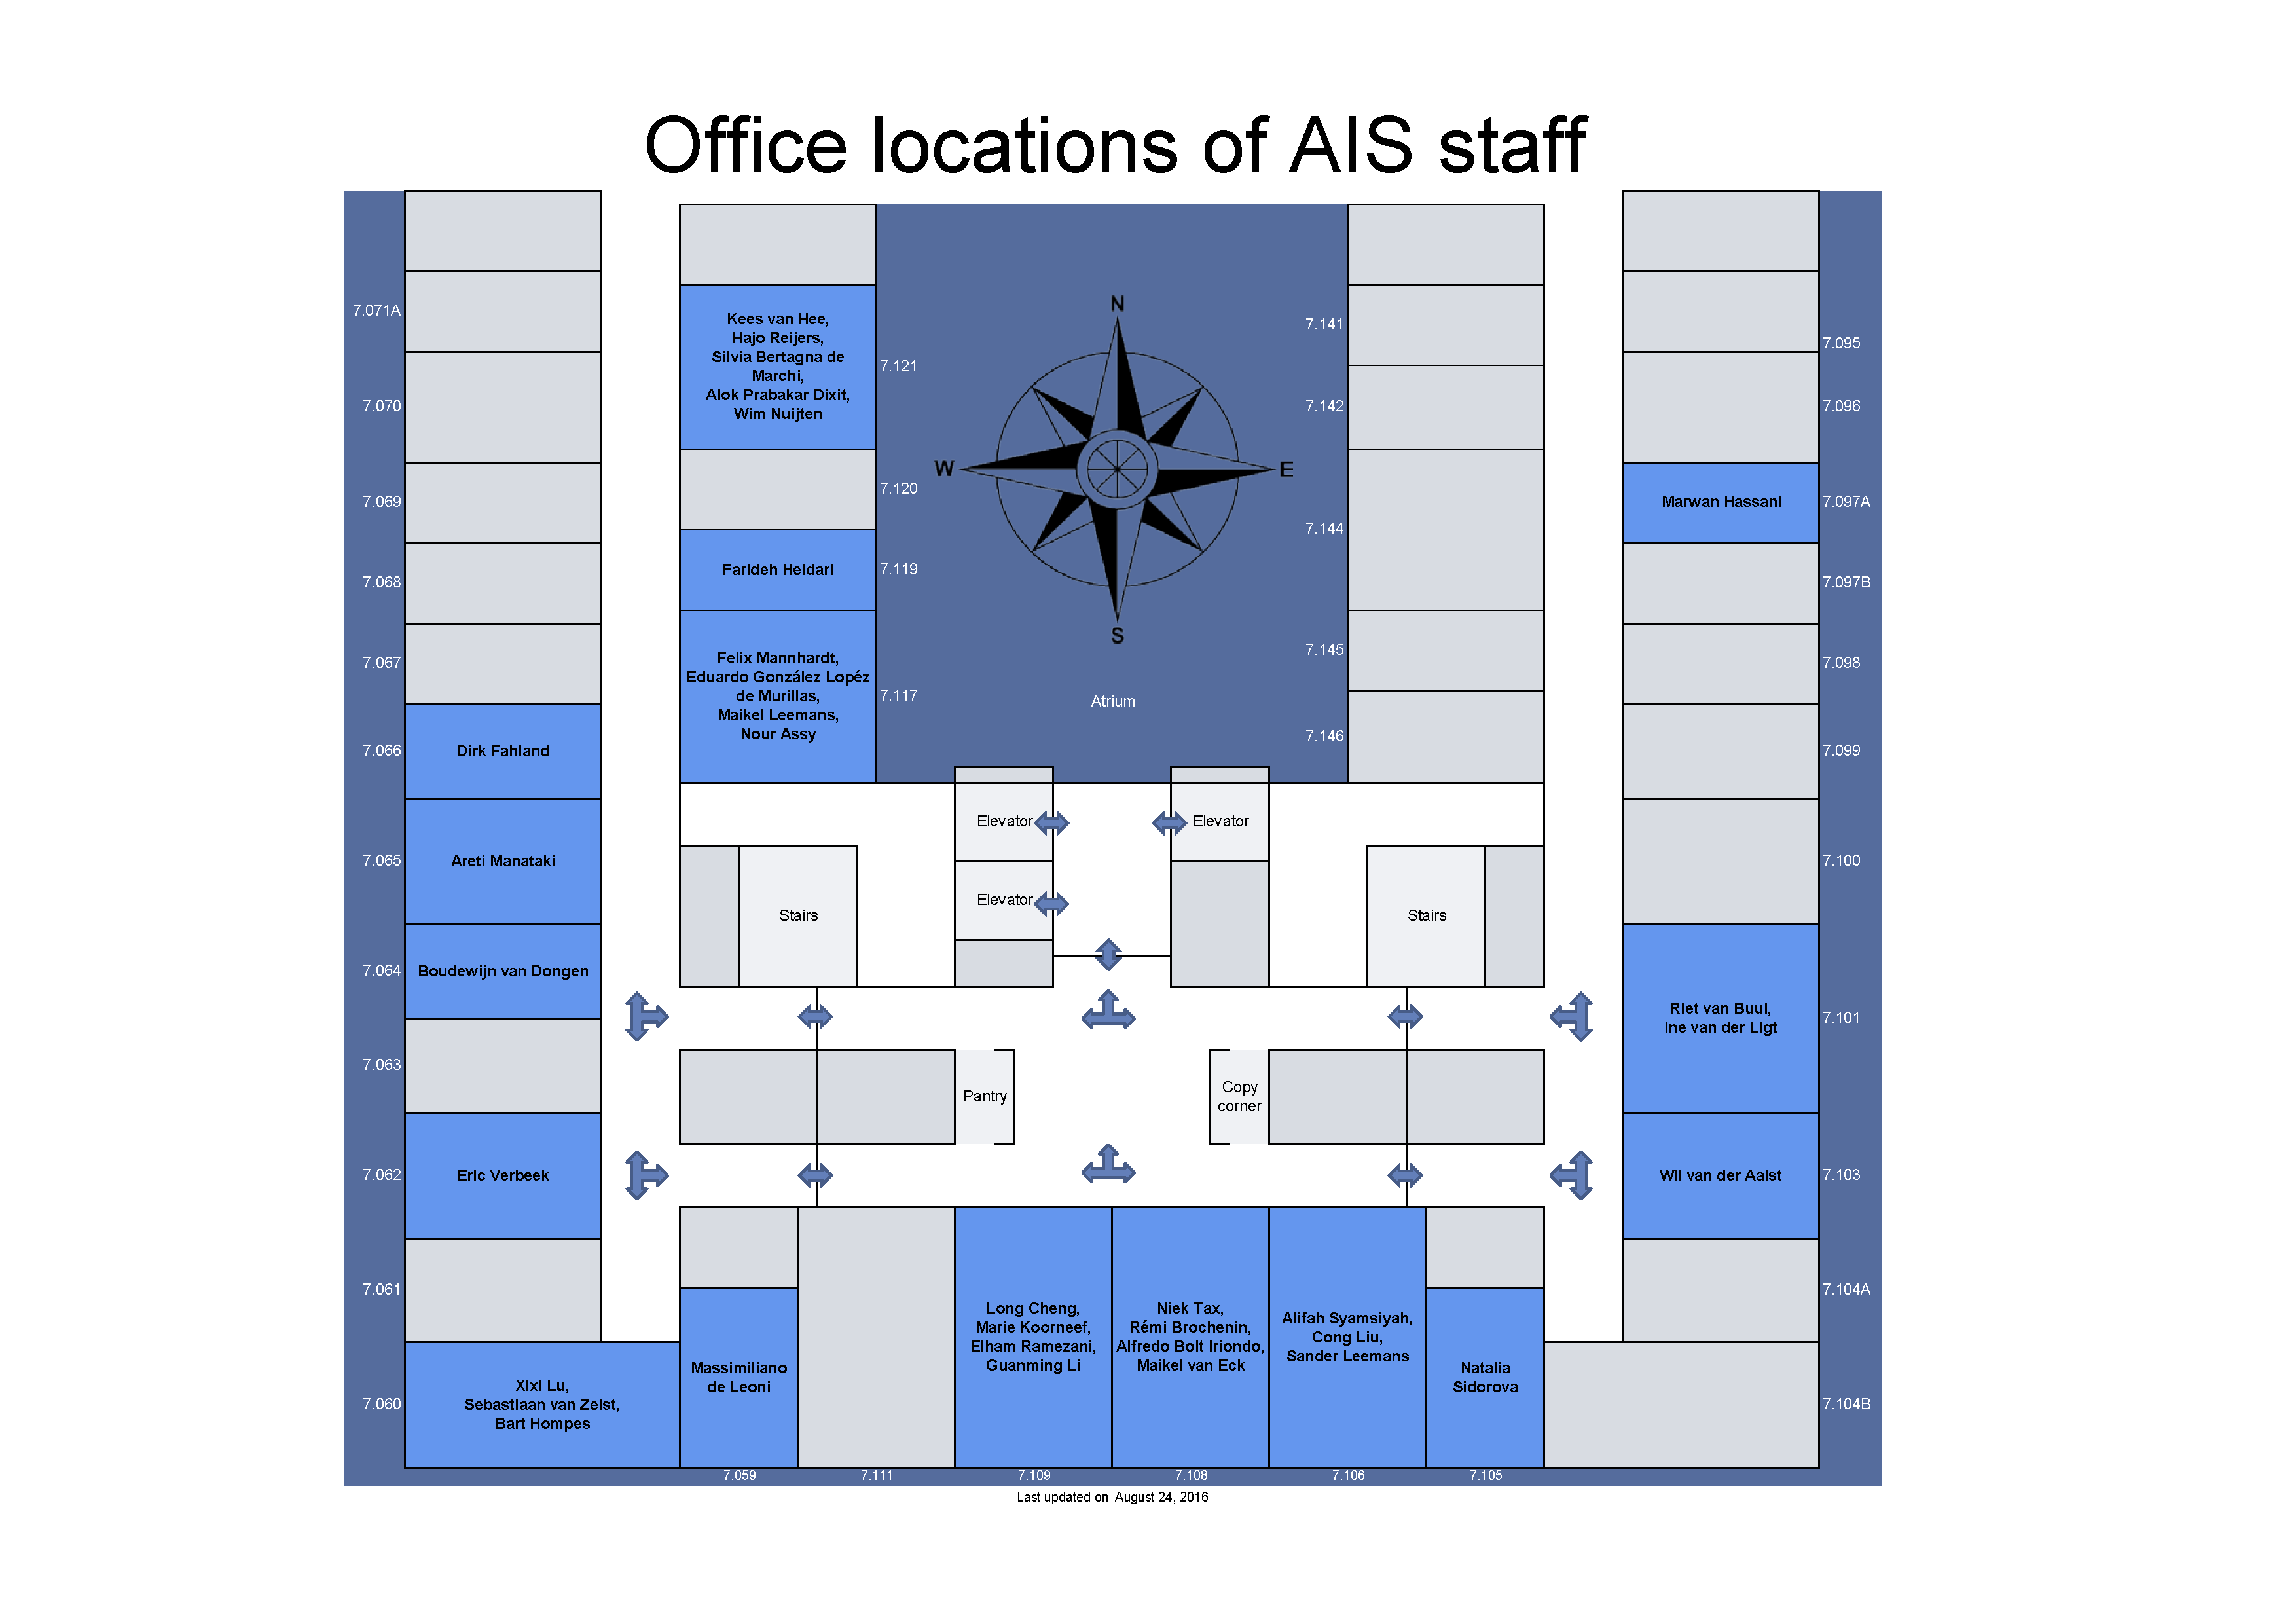 images:offices20160824.png